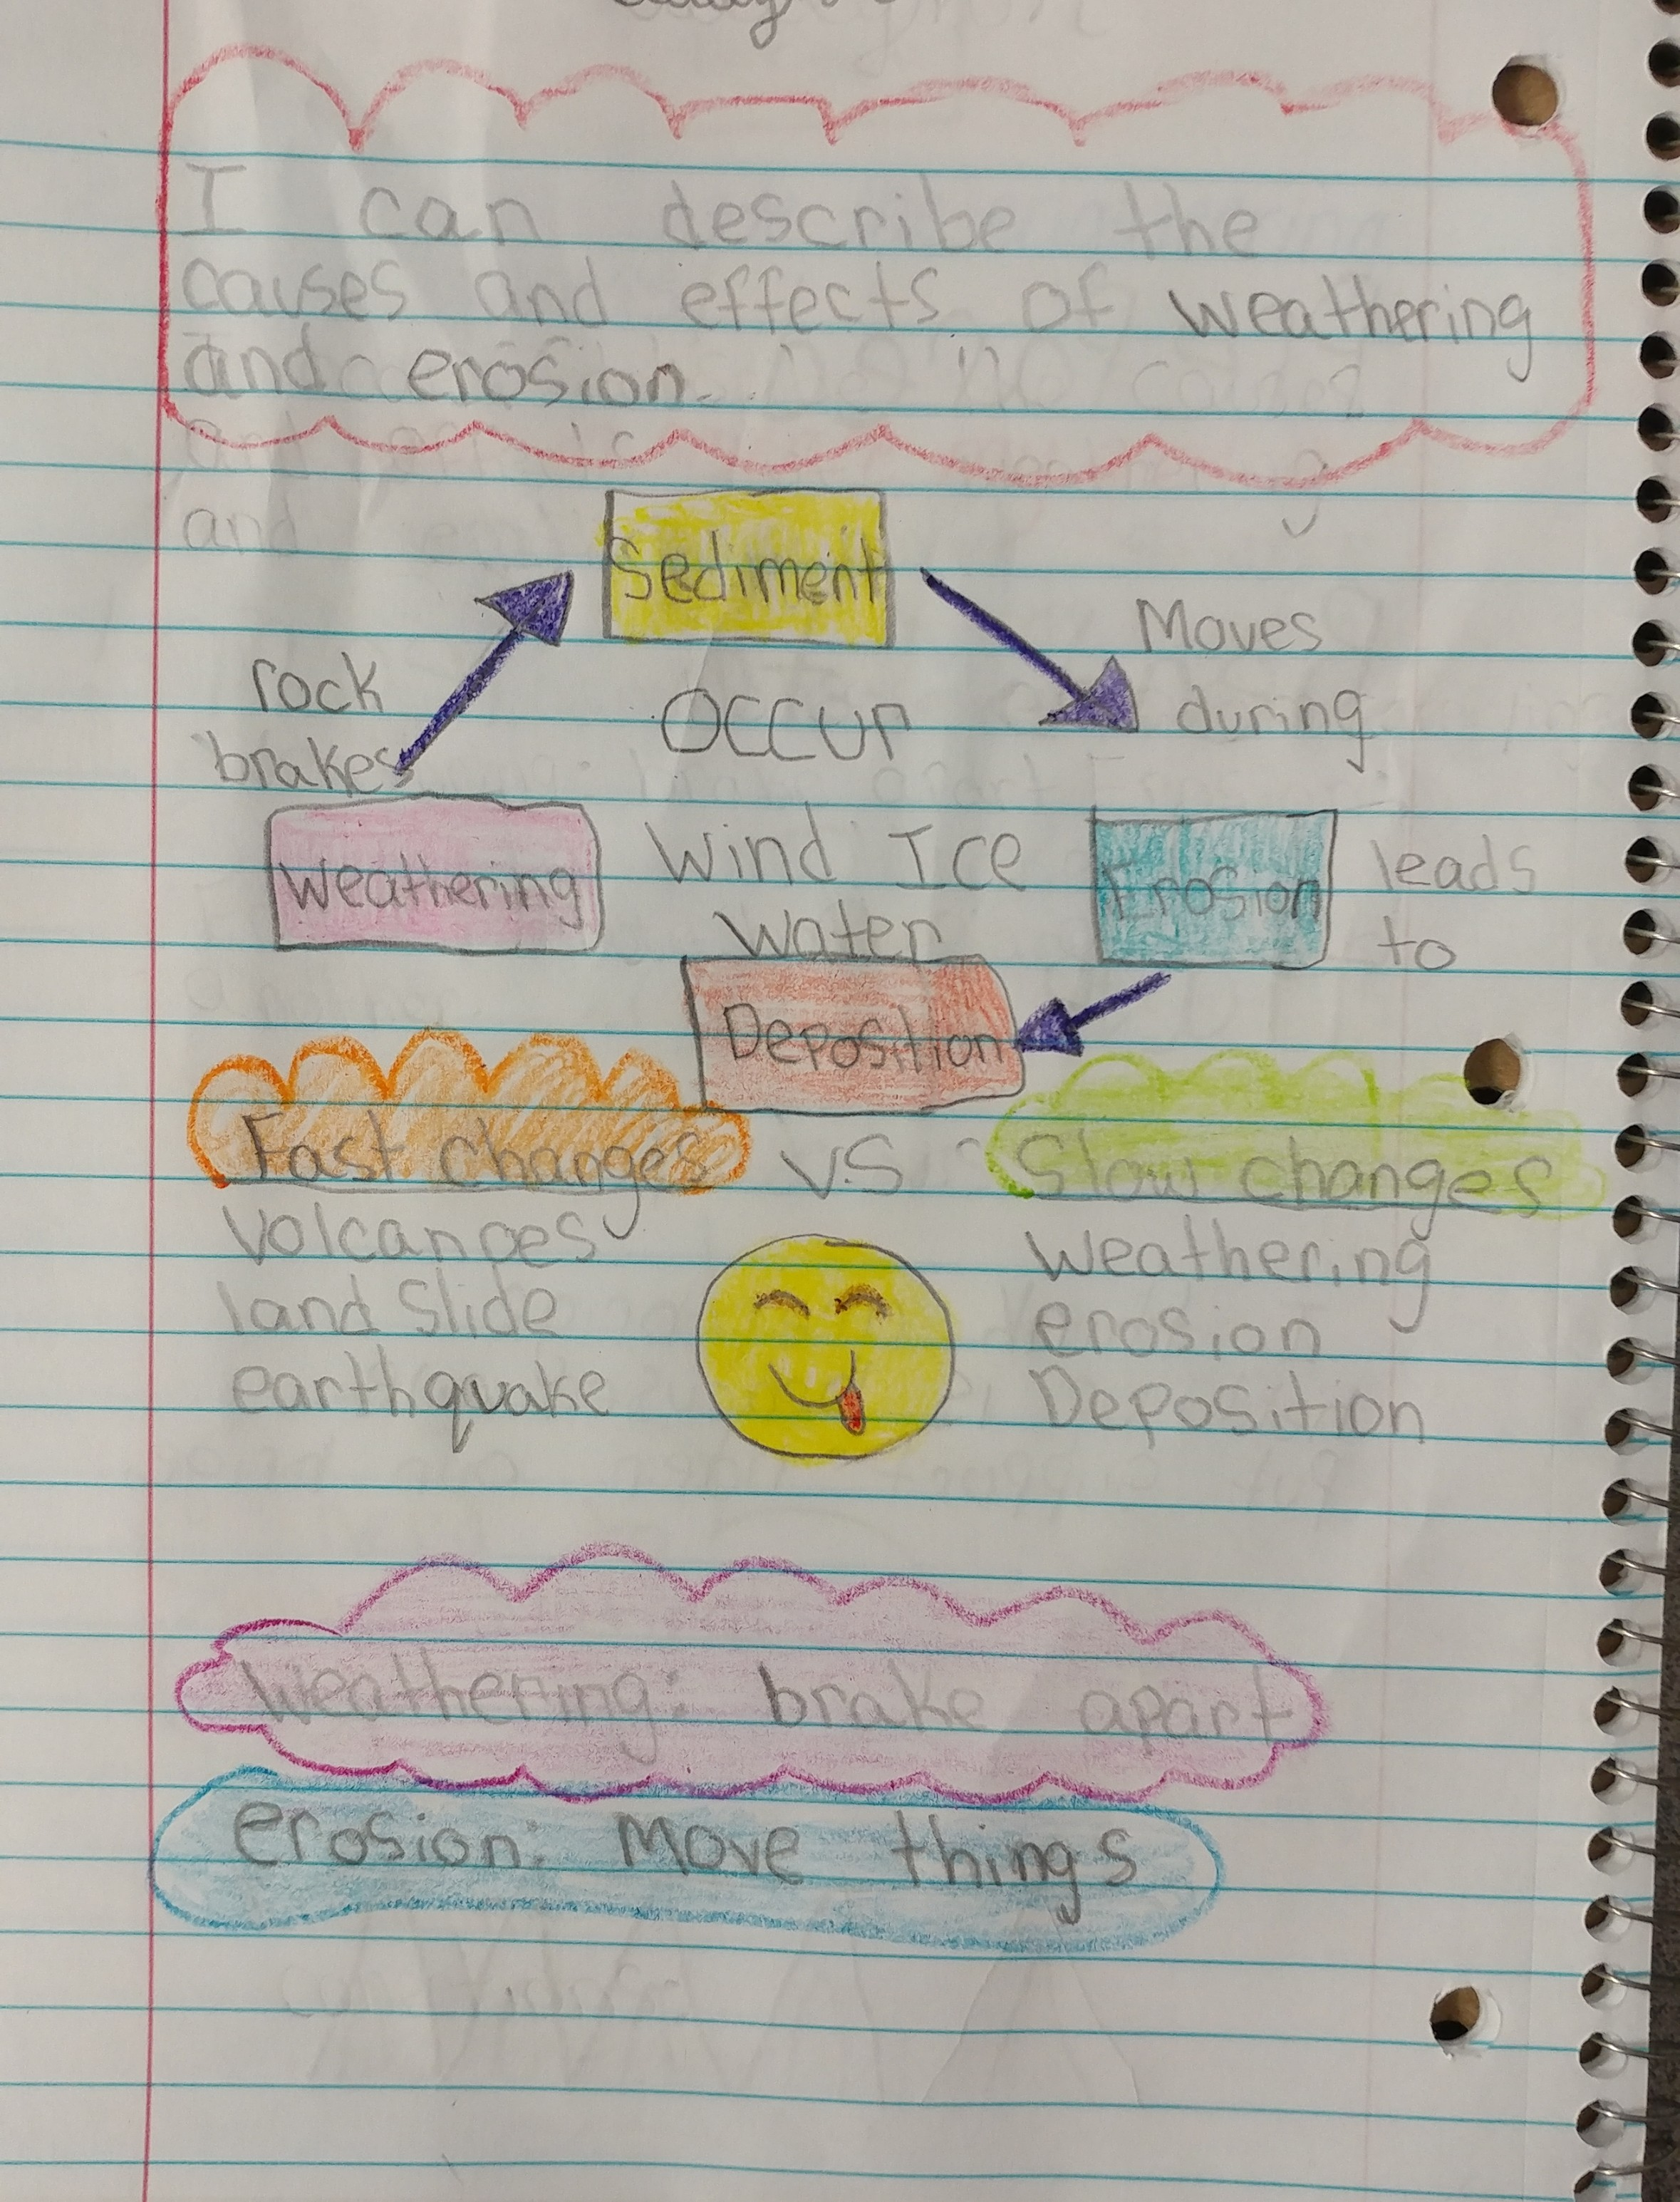 Weathering/Erosion (Adelynn)  - Our notes look different for we do not learn the same.